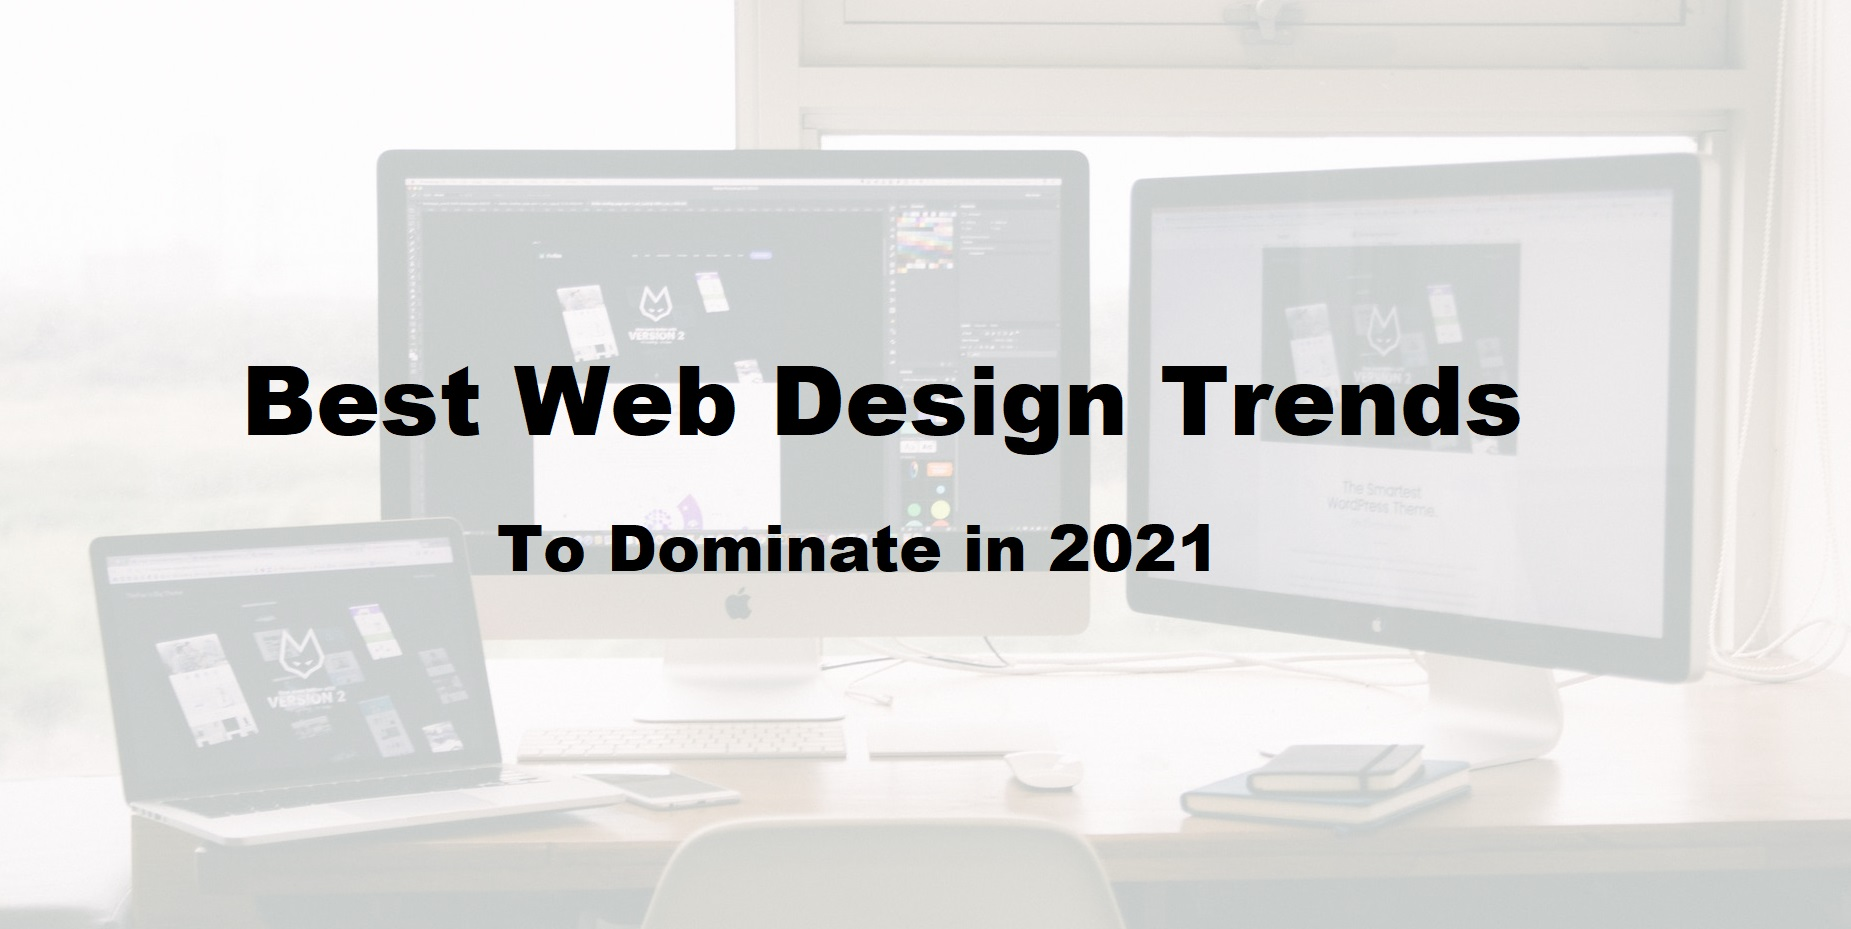 Best Web Design Trends To Dominate in 2021